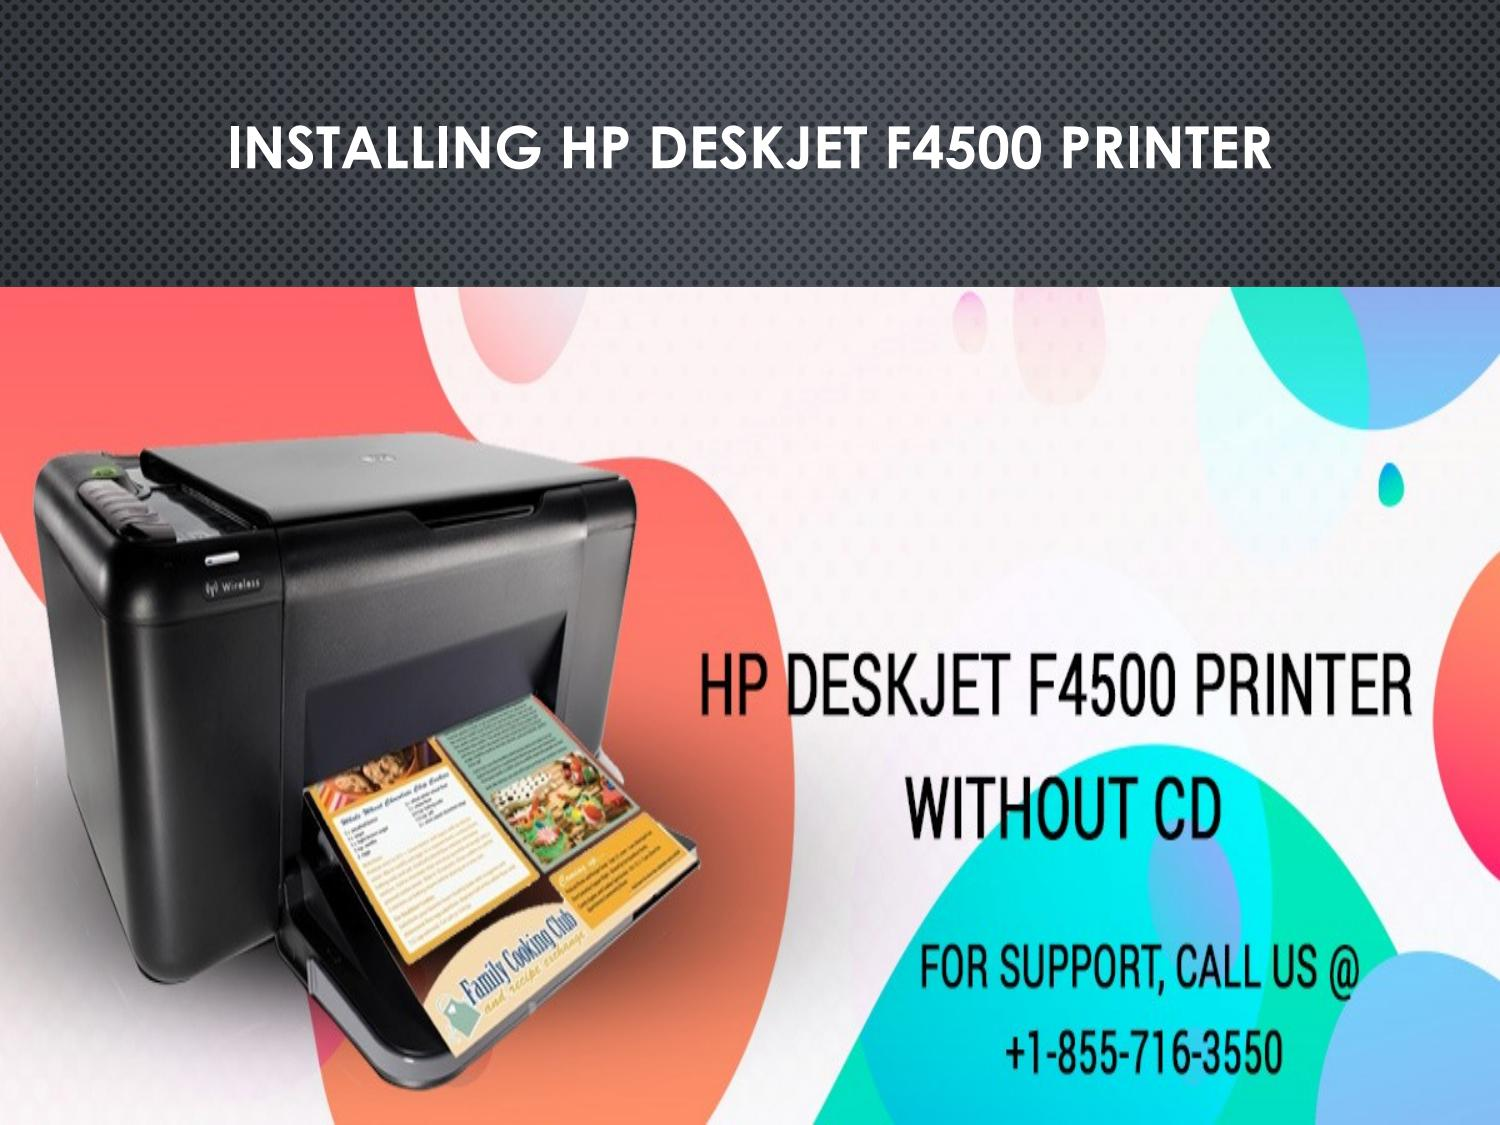 How to Install HP DeskJet F4500 printer without CD by 123-HP